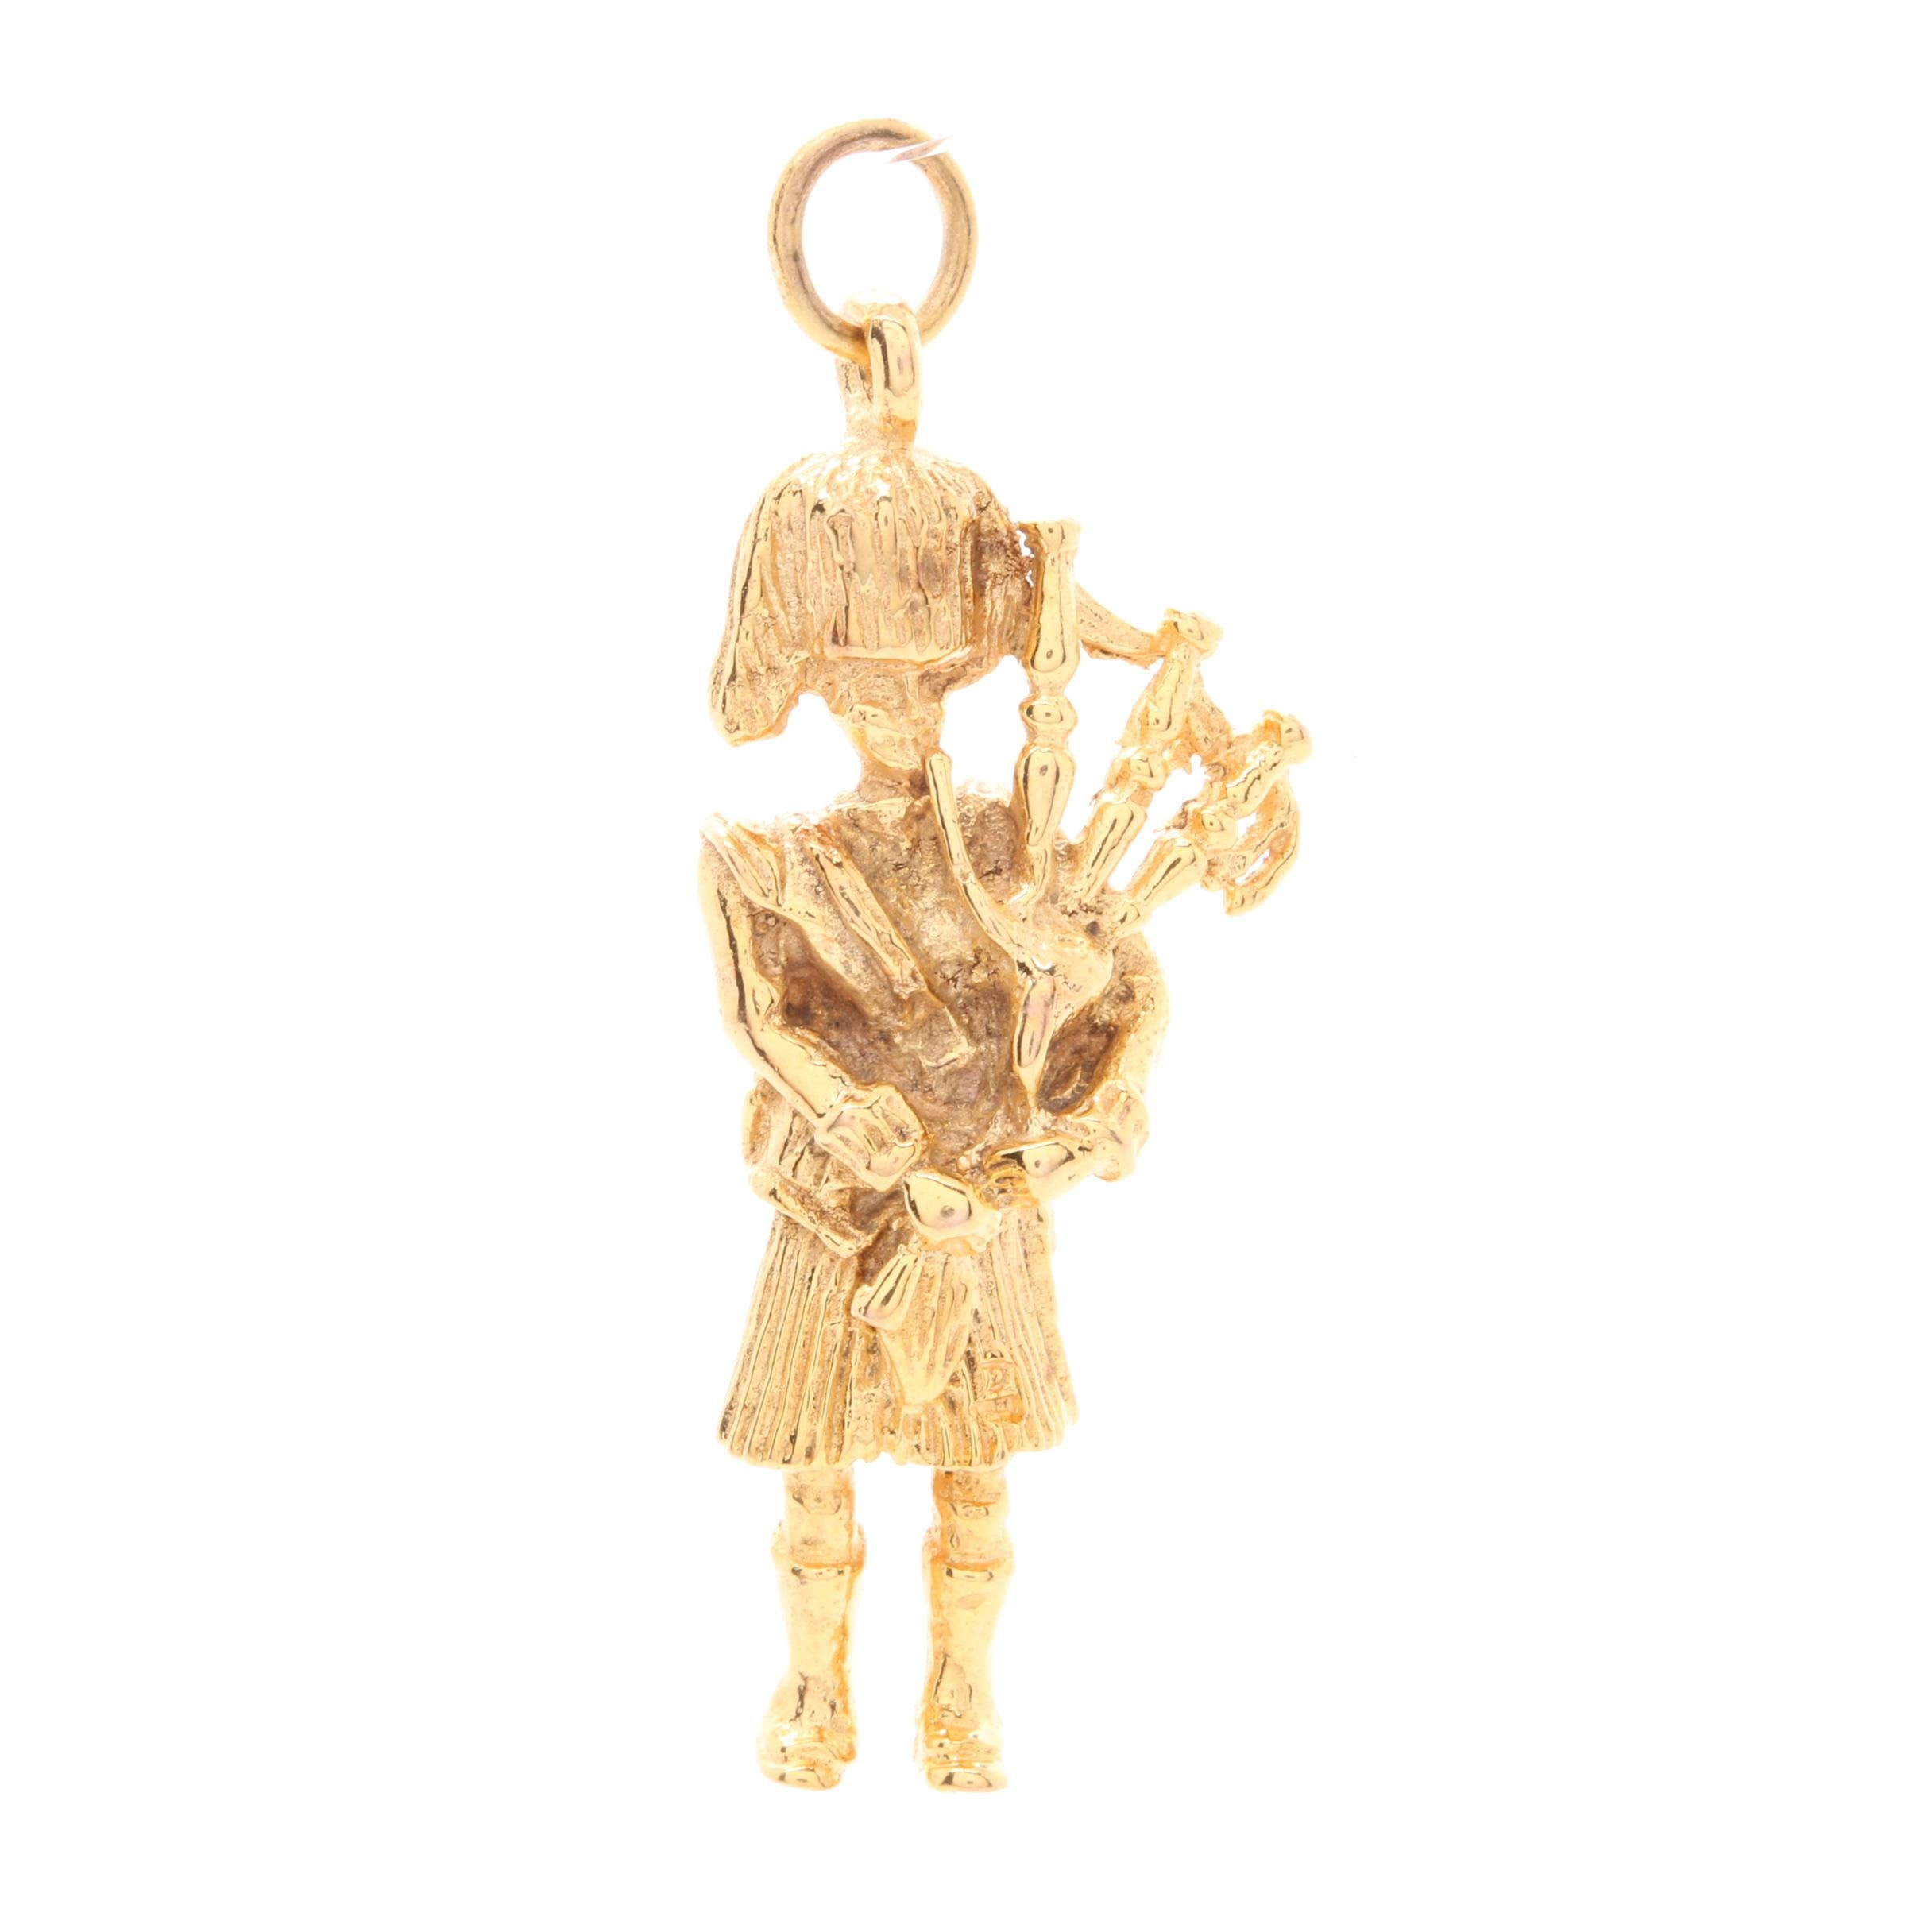 9K Yellow Gold Bagpiper Charm